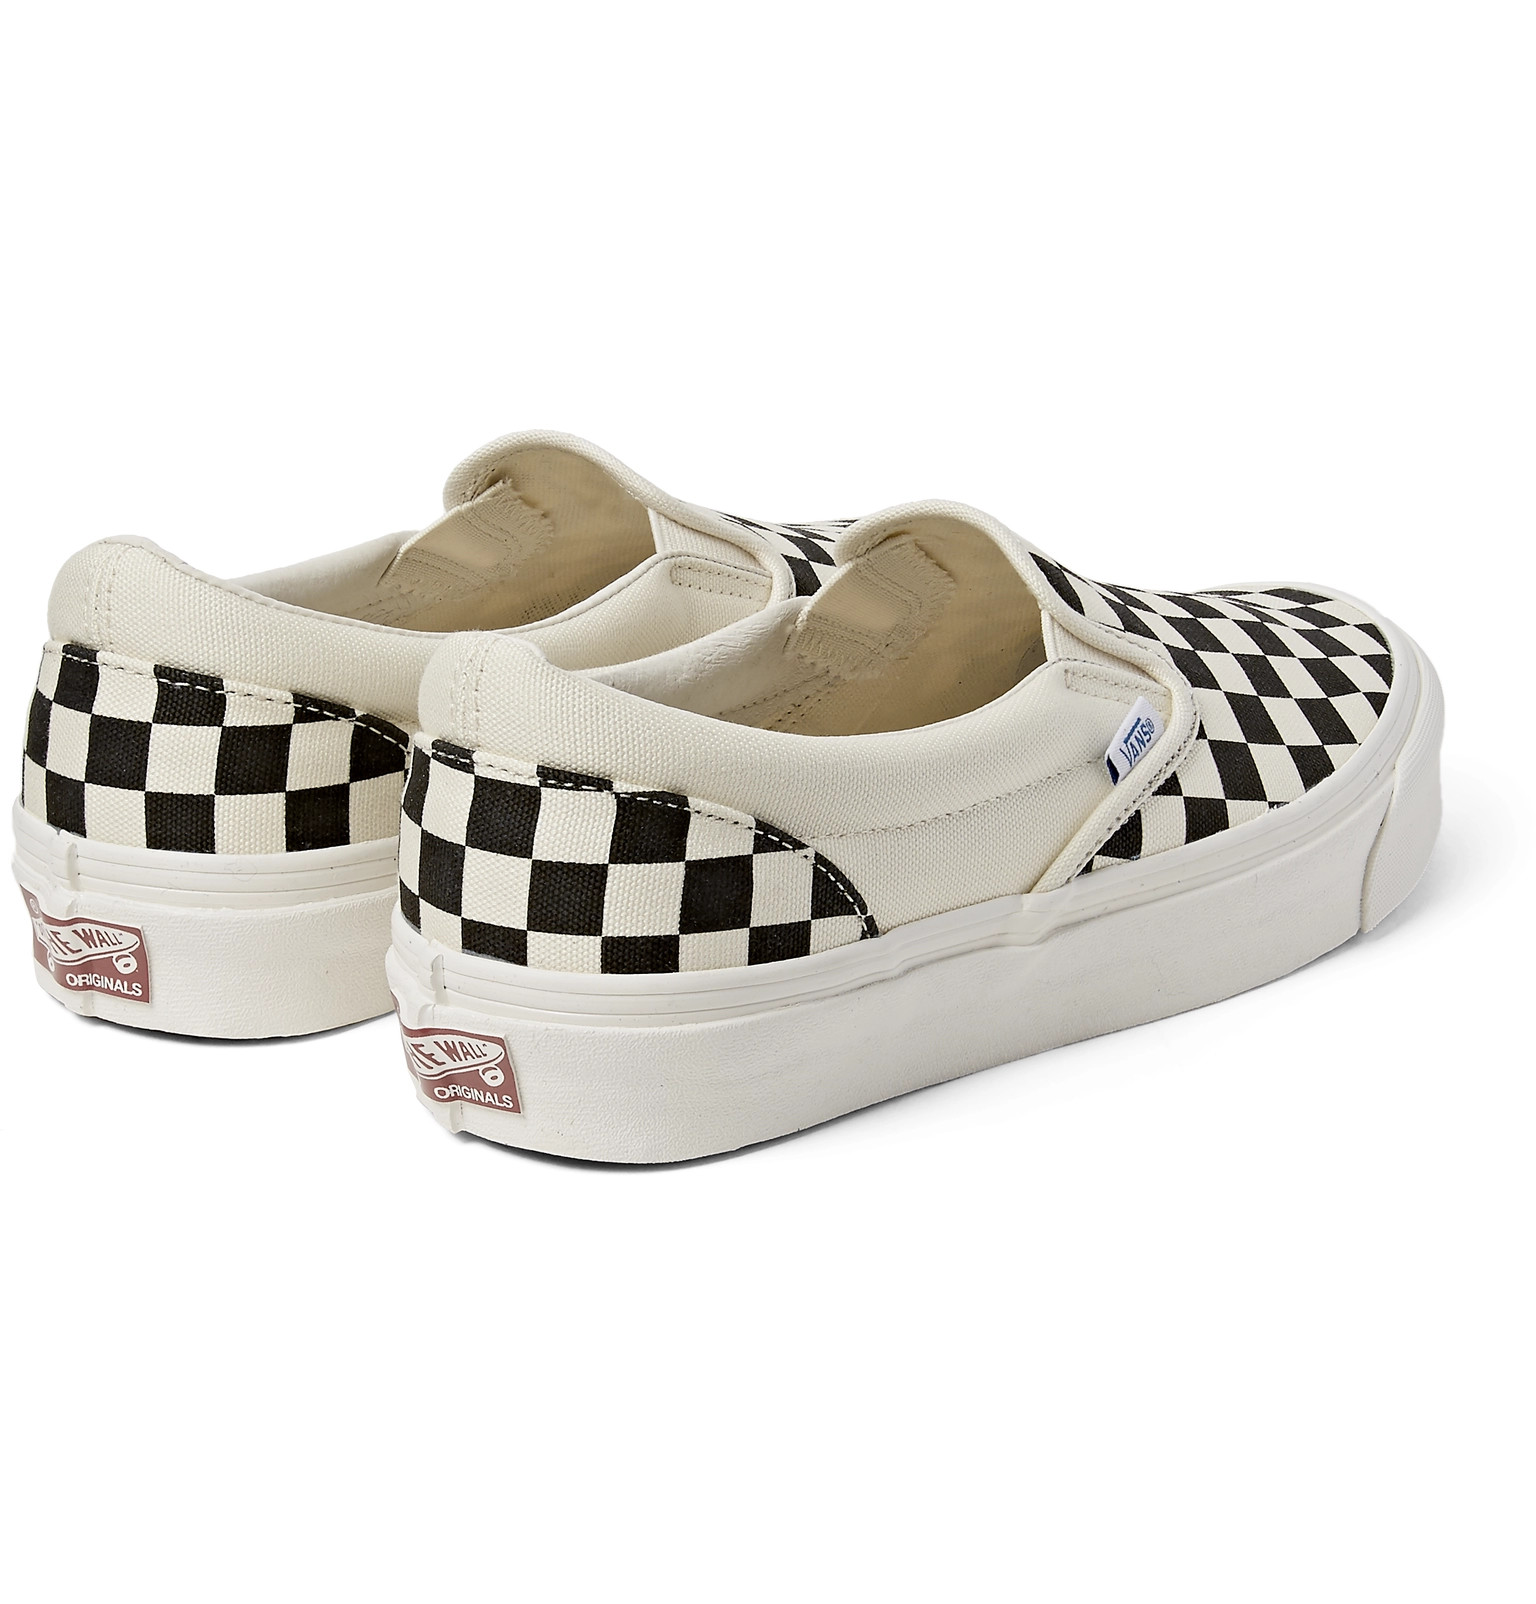 d86b96892431bb Vans - OG Classic LX Checkerboard Canvas Slip-On Sneakers